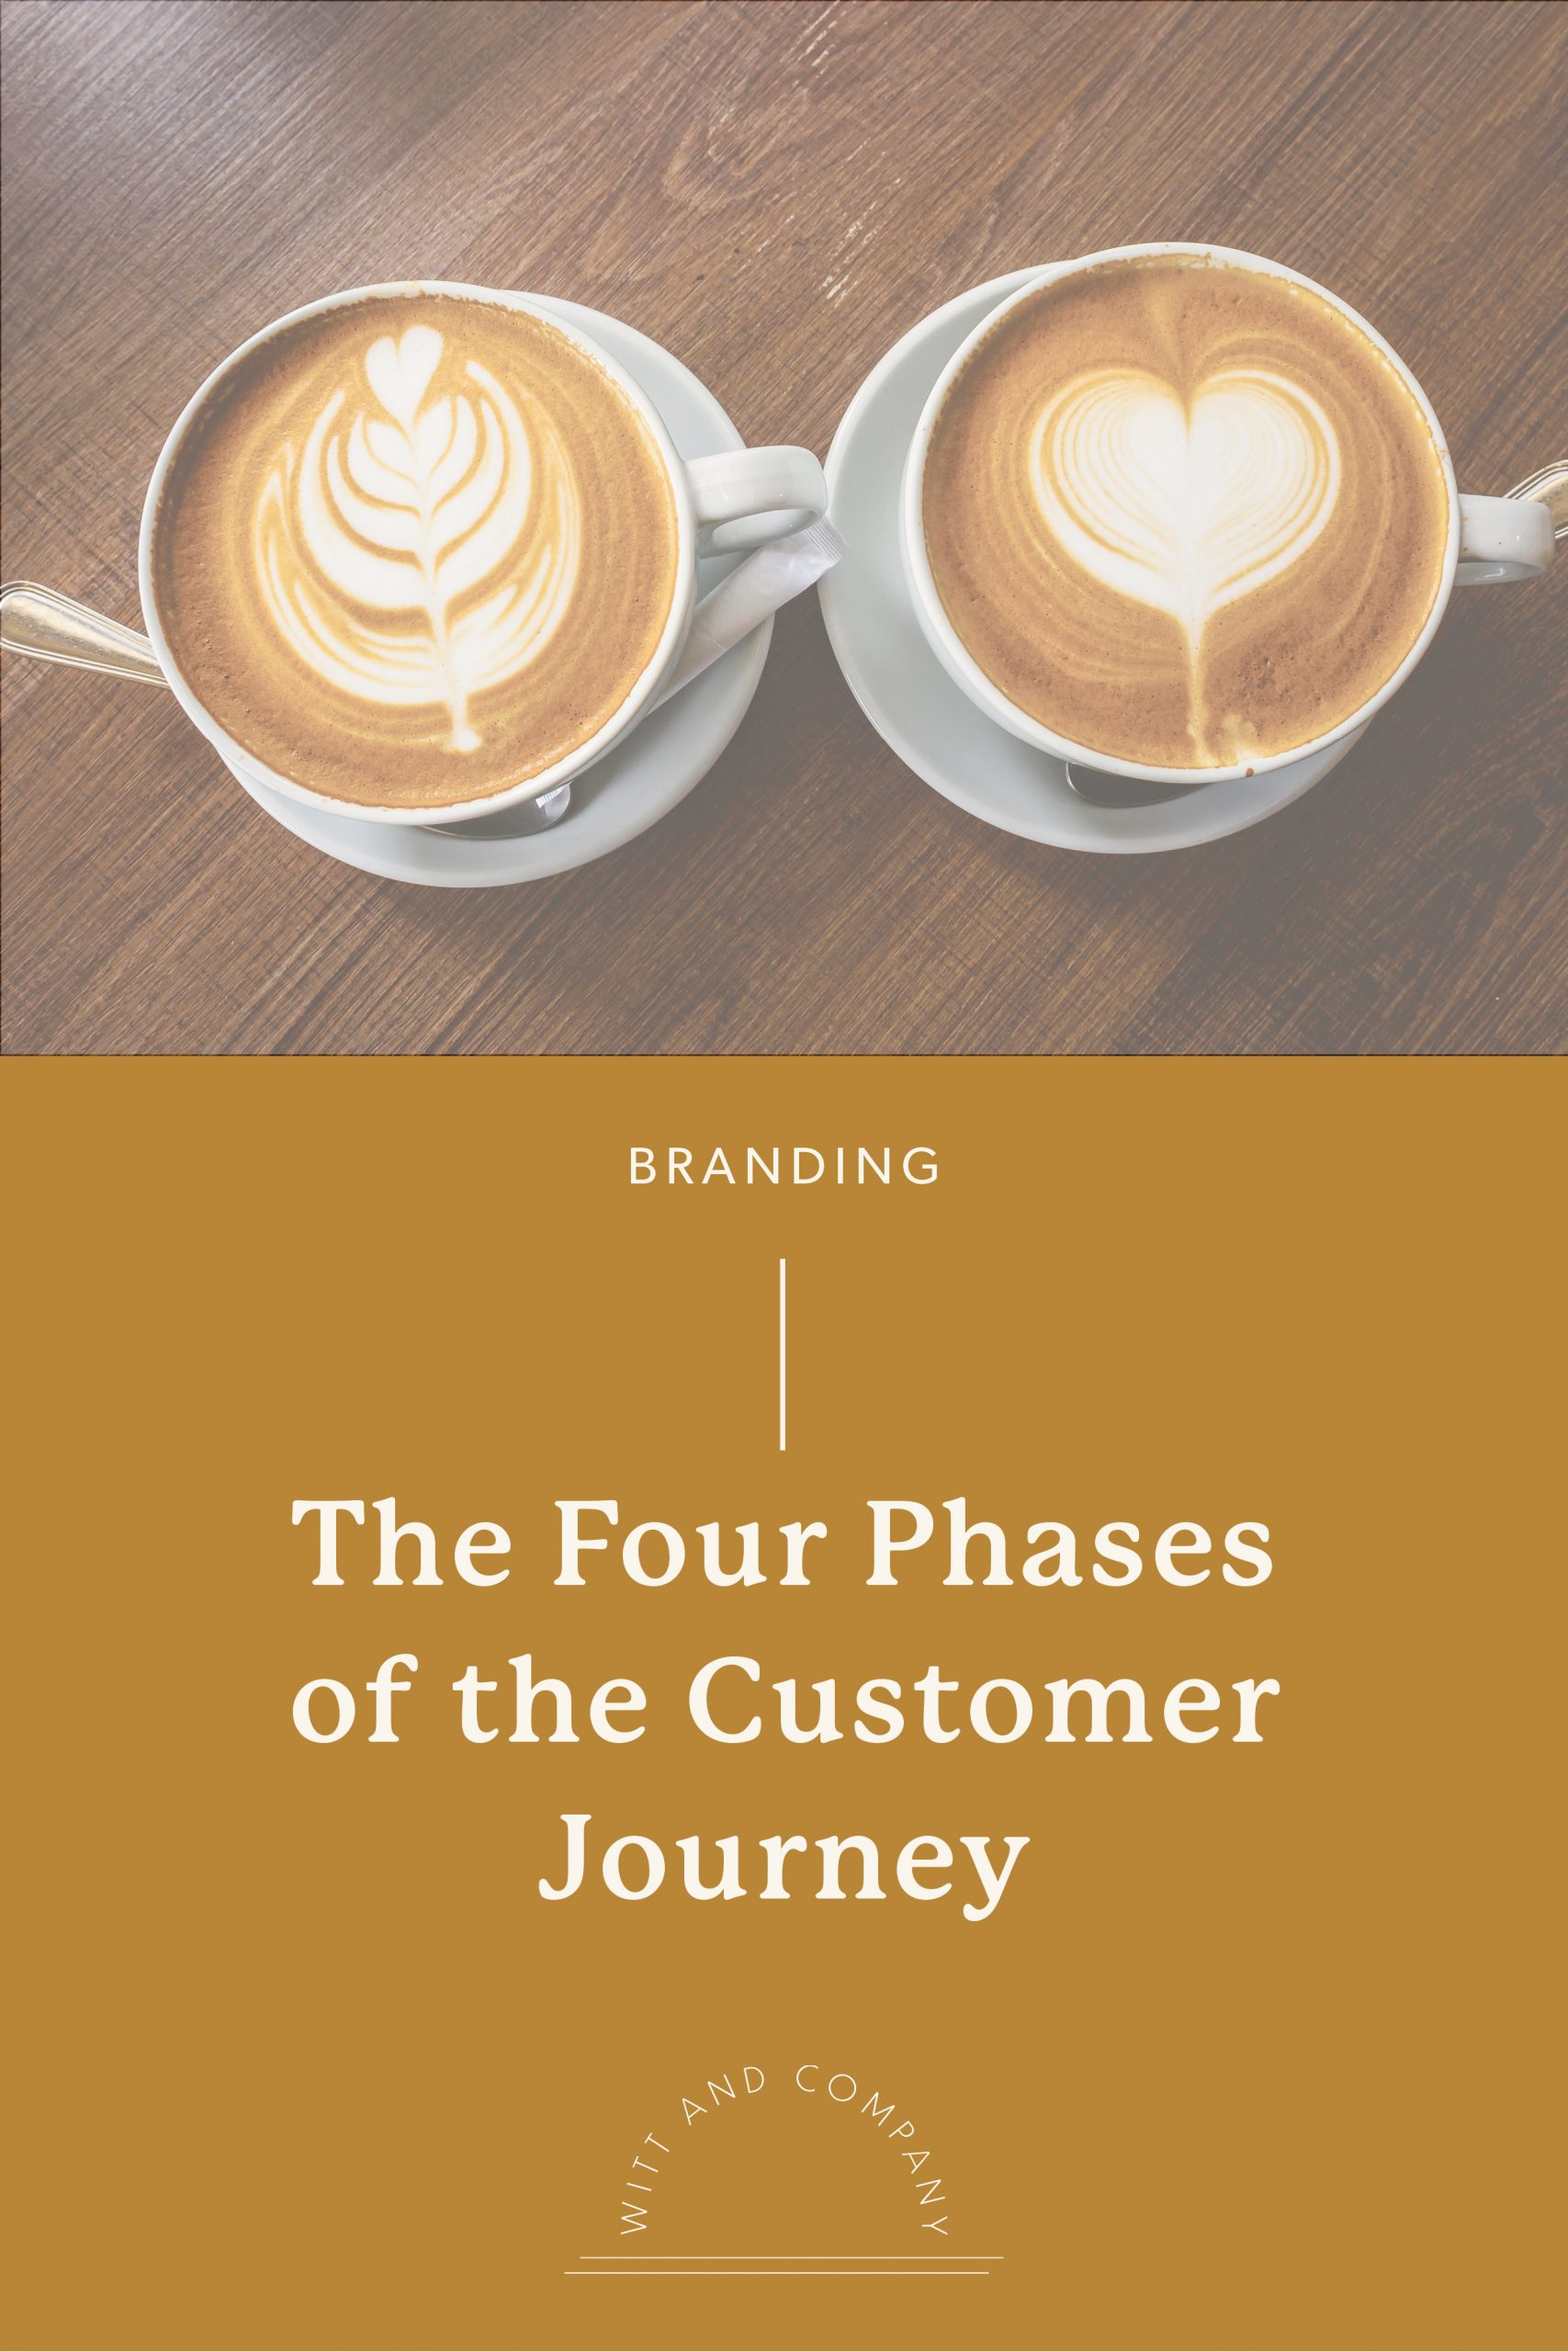 The Four Phases of the Customer Journey